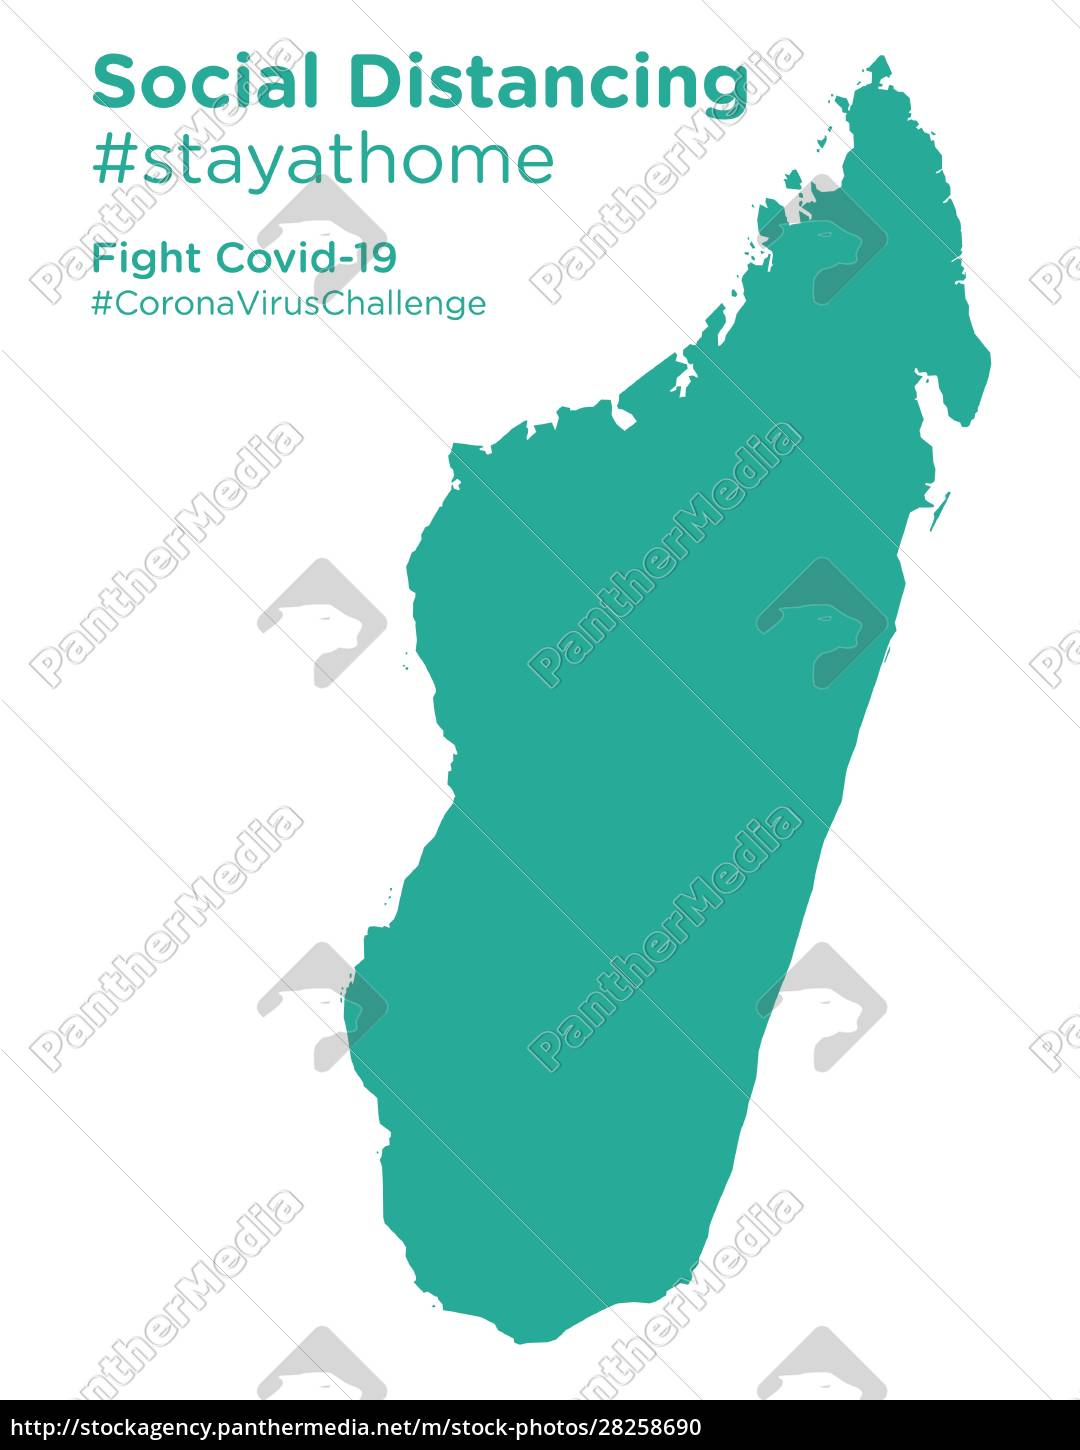 madagascar, map, with, social, distancing, stayathome - 28258690